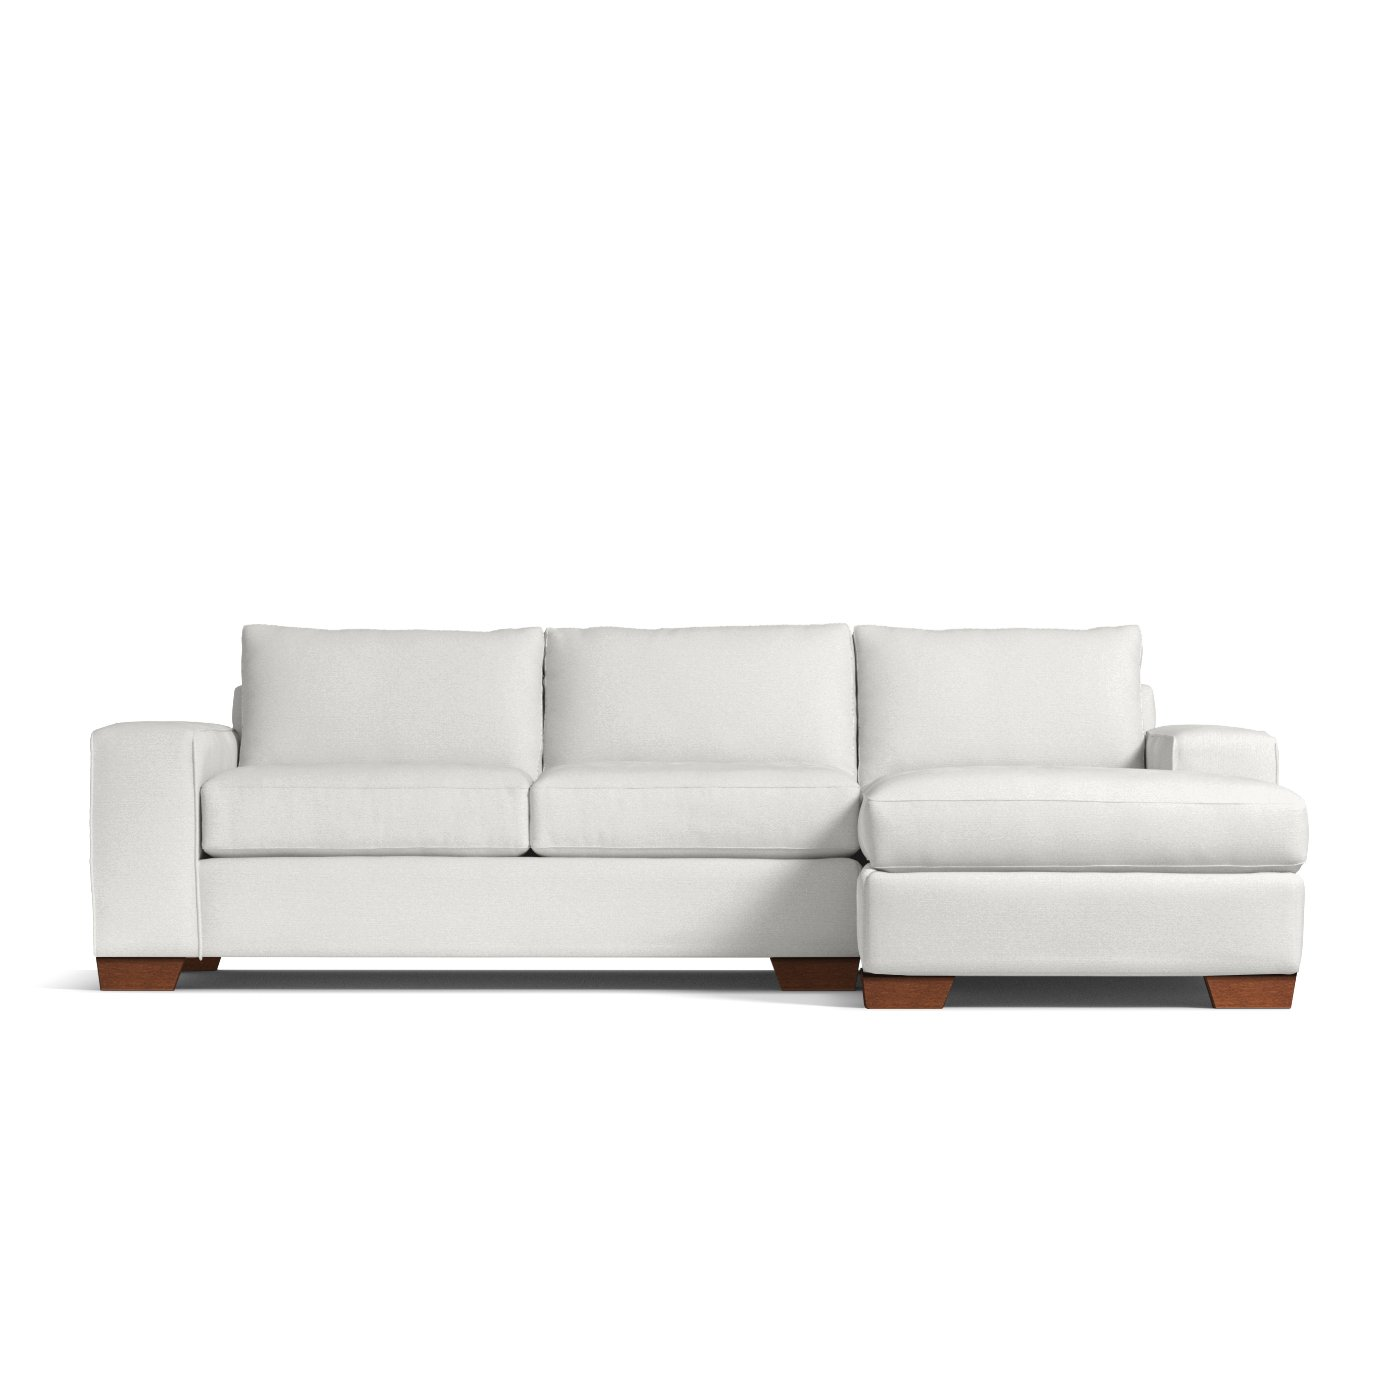 Modern Sectional Sofas Reversible 2 3 & 5 Piece Designs